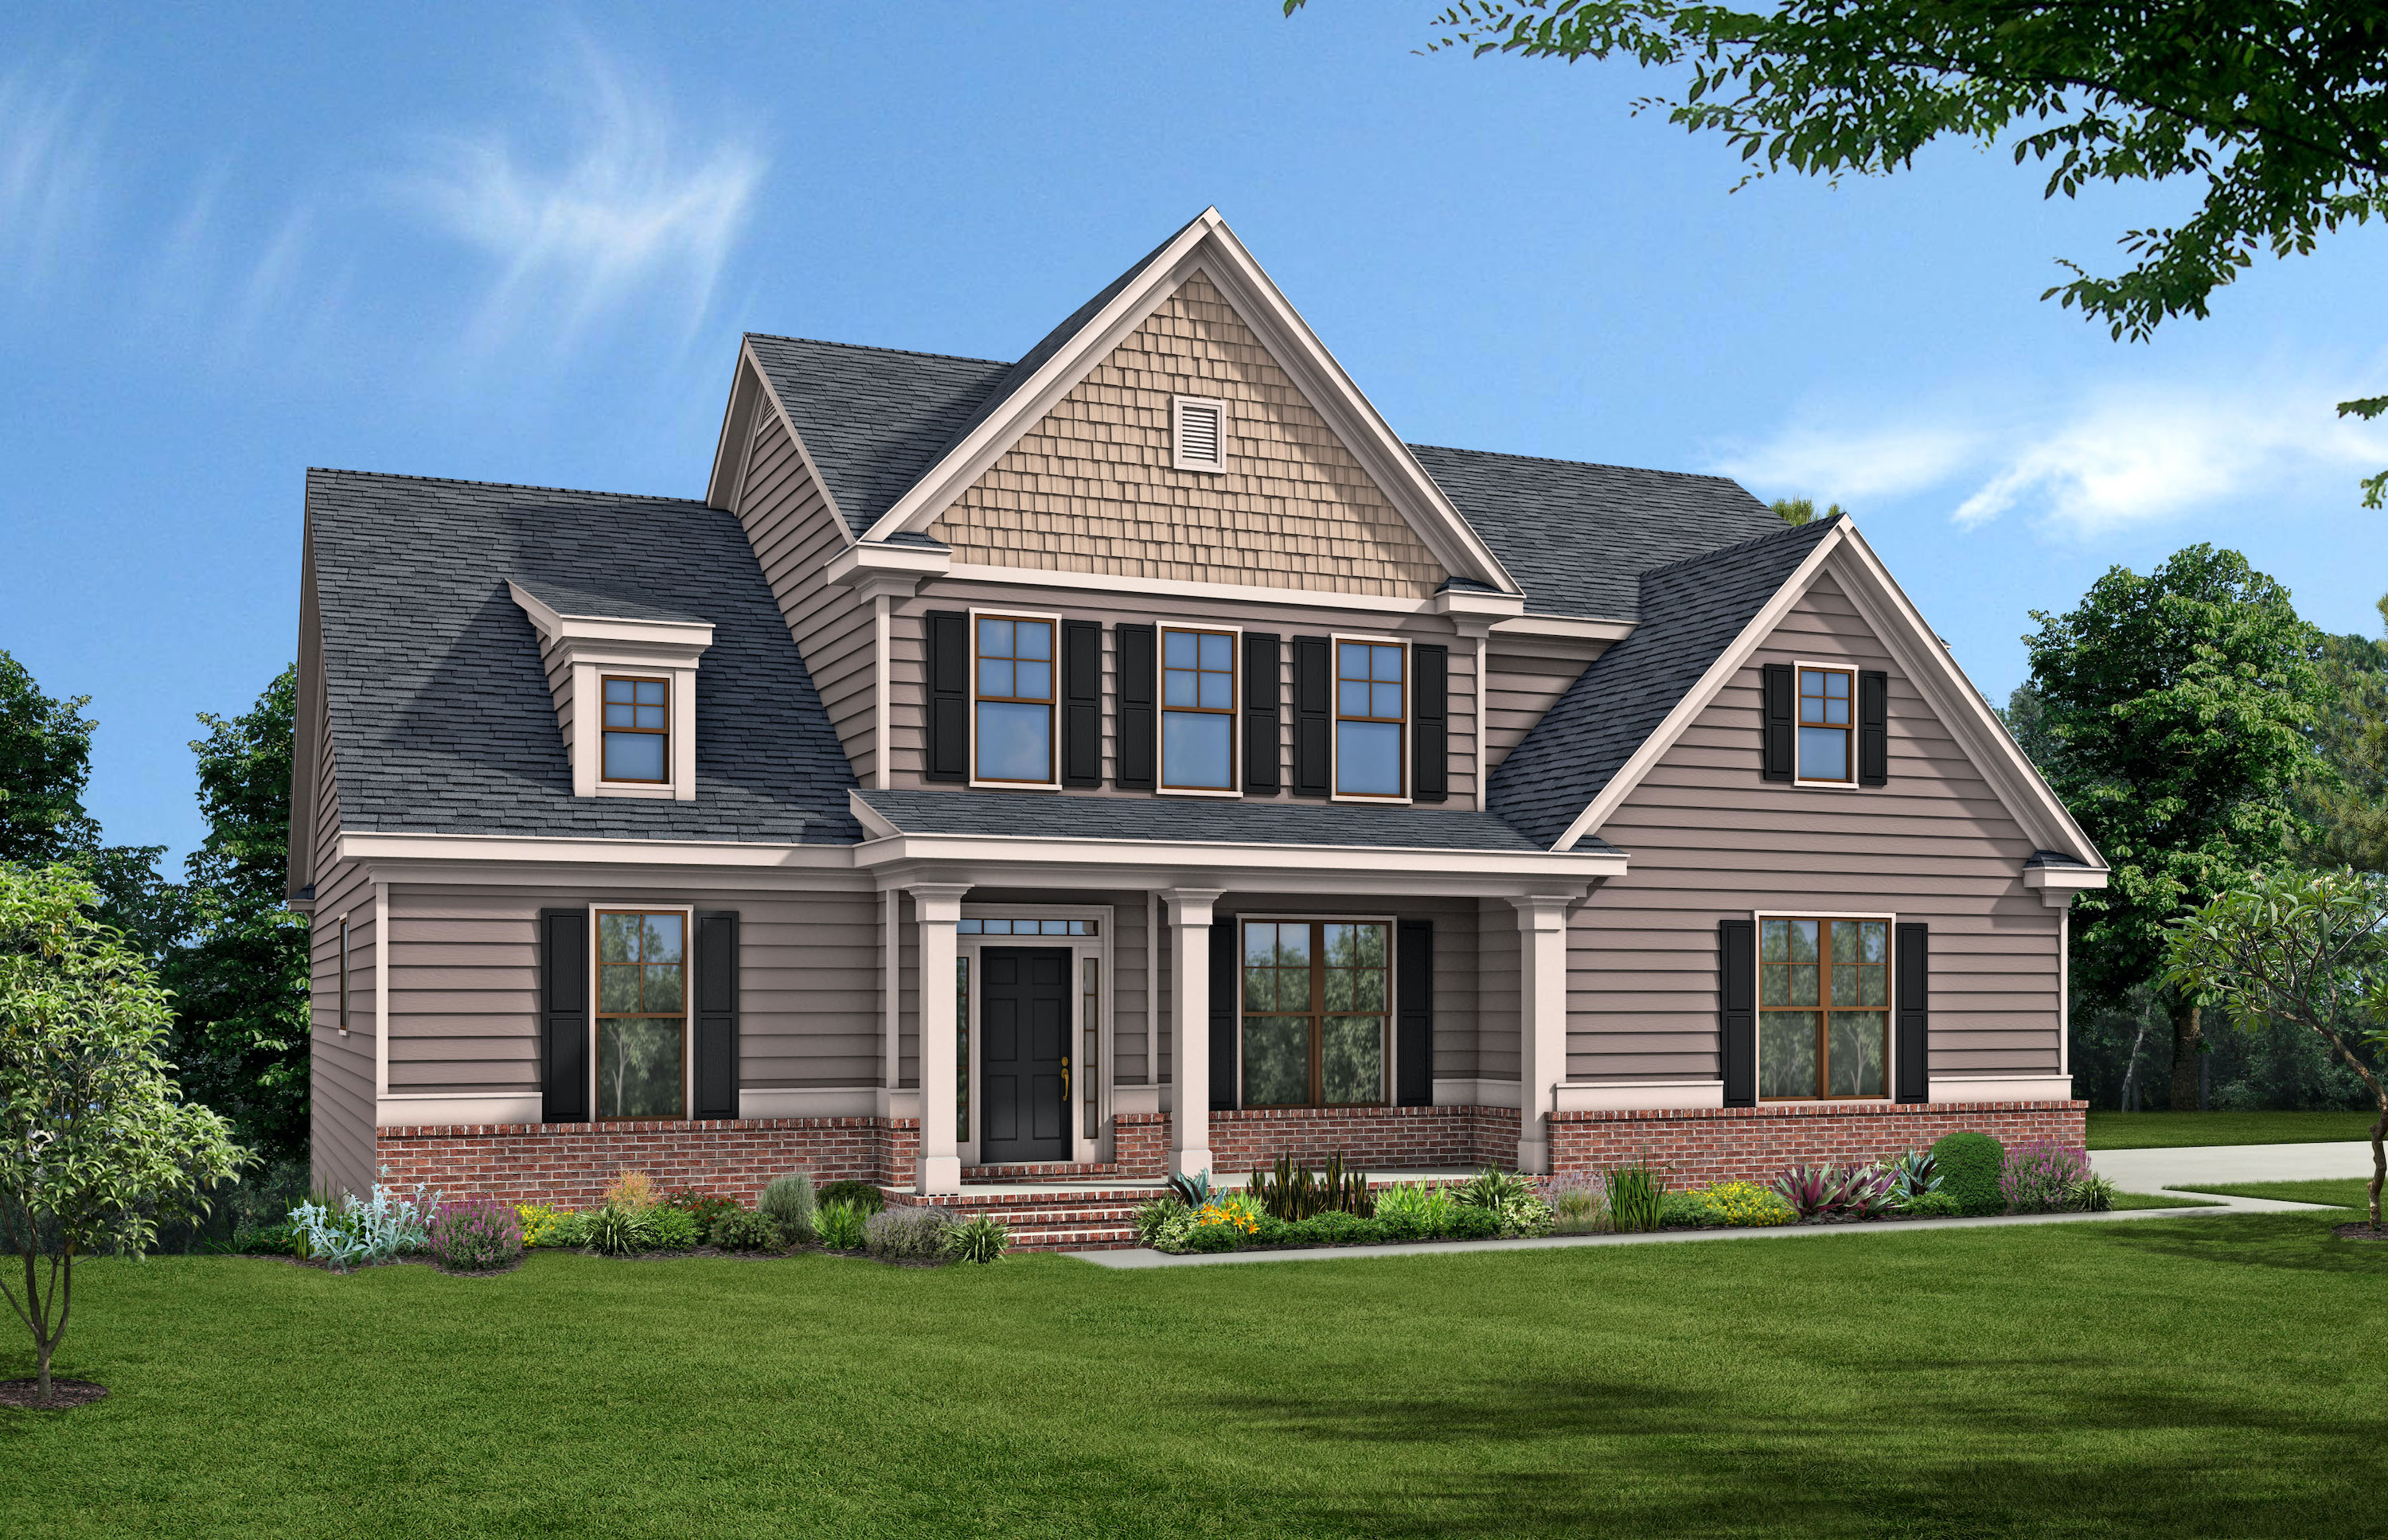 Tiburon Plan front elevation of home. Peachtree Residential offers personalized service when building homes.